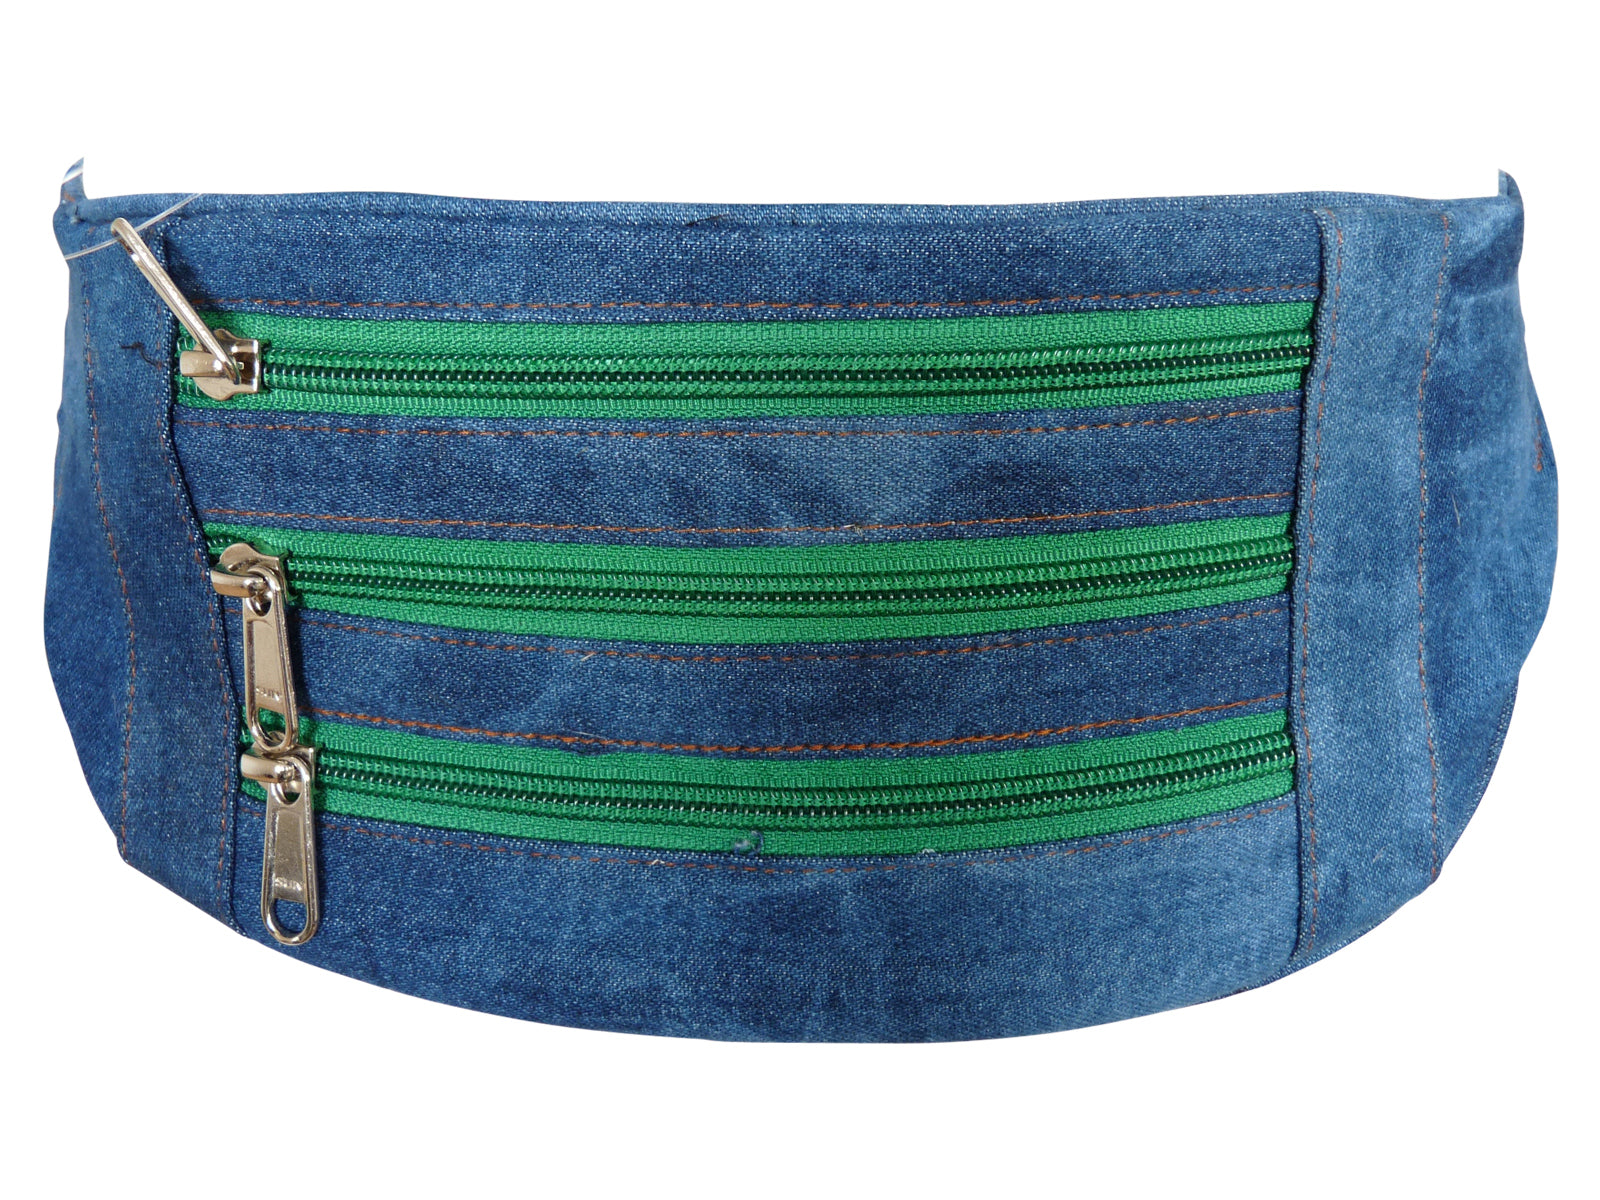 Flat Denim Bumbag RL252DDGZ dark green zips